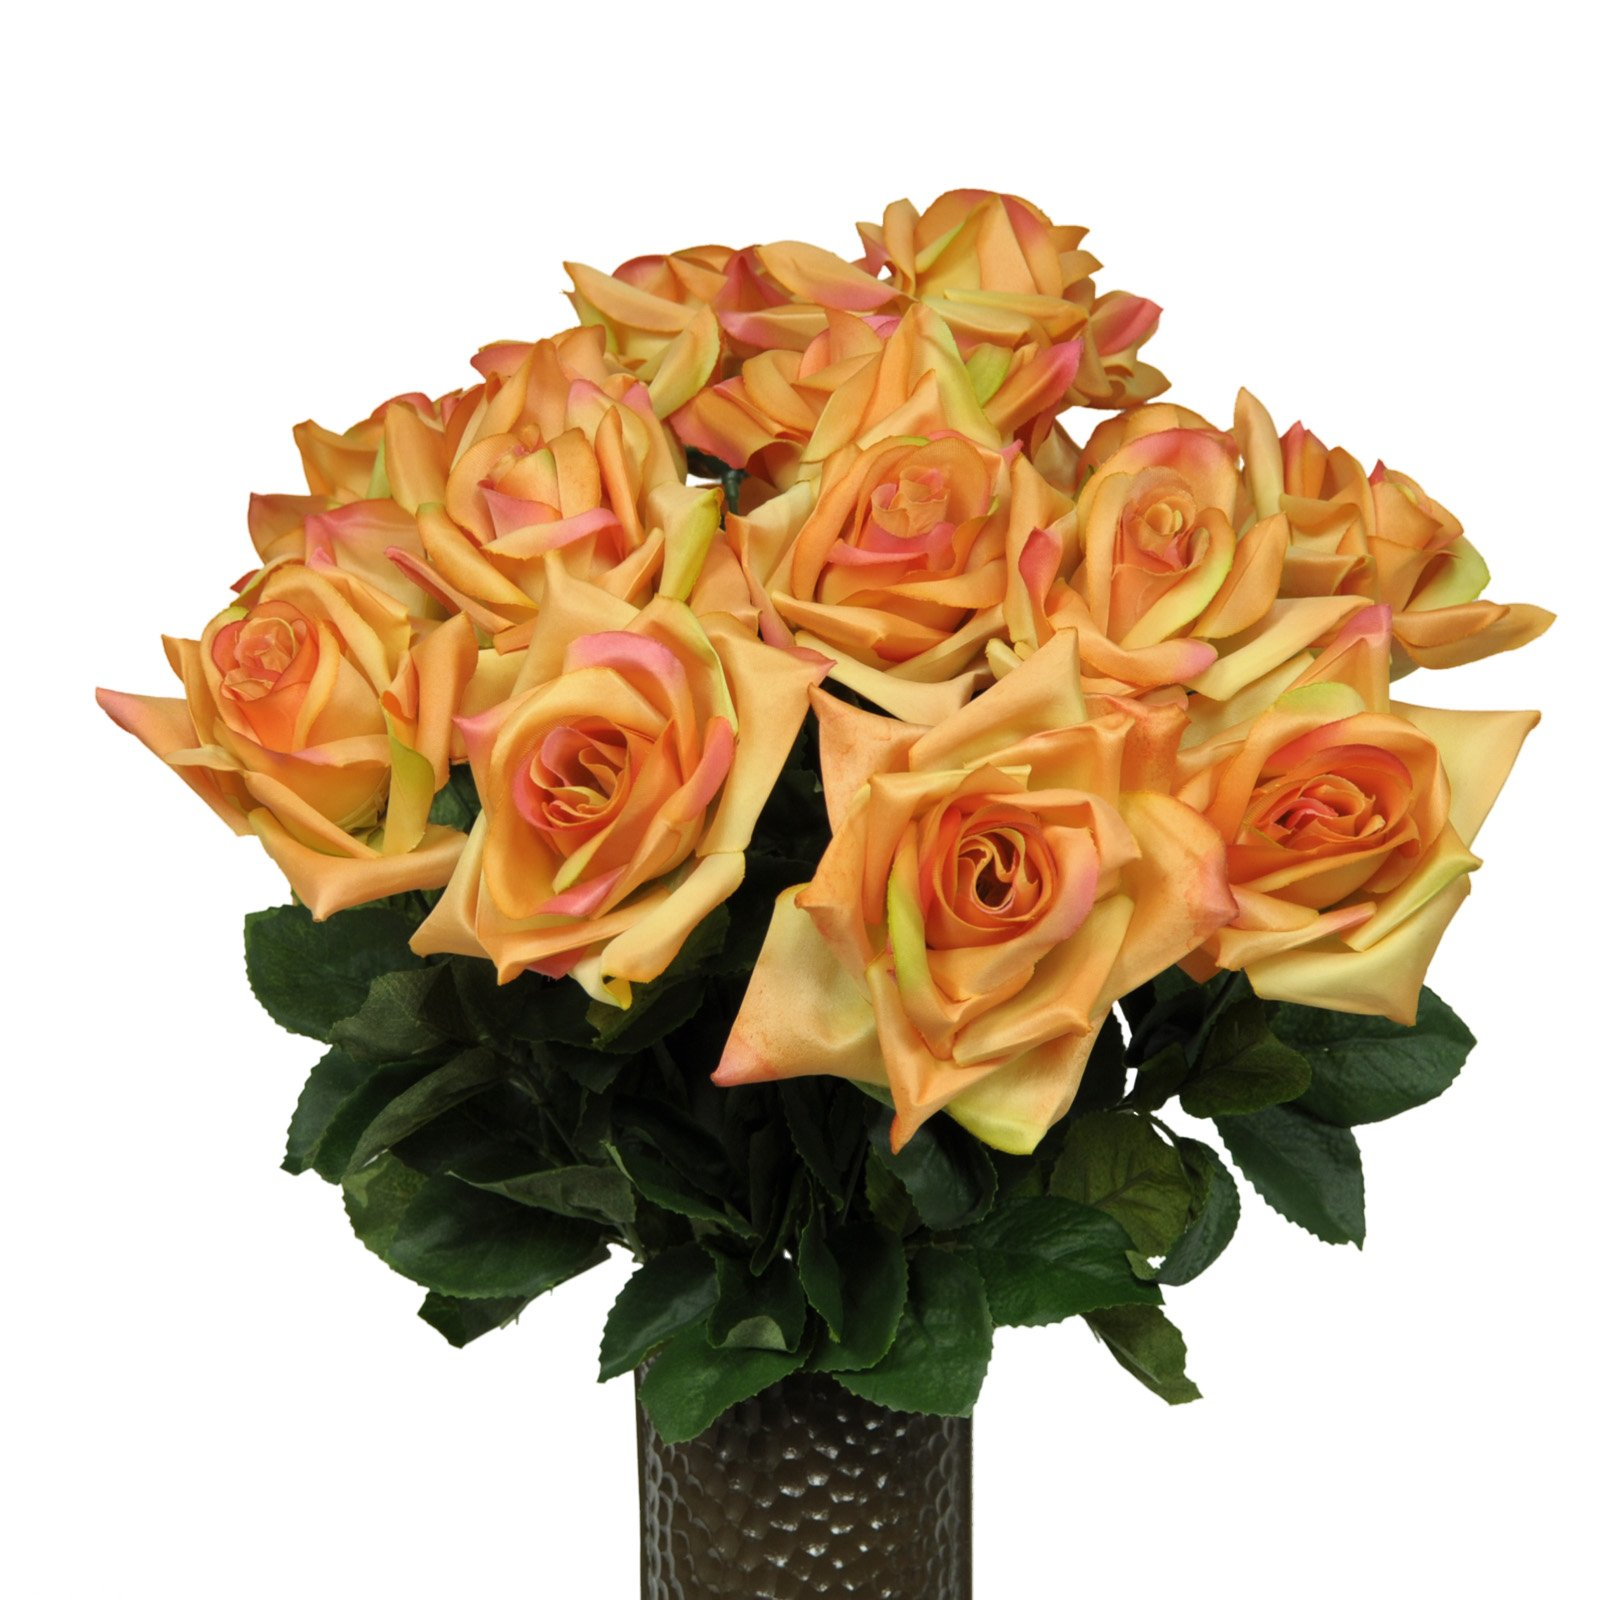 Sunset-Orange-Diamond-Roses-Artificial-Bouquet-featuring-the-Stay-In-The-Vase-Designc-Flower-Holder-MD1552